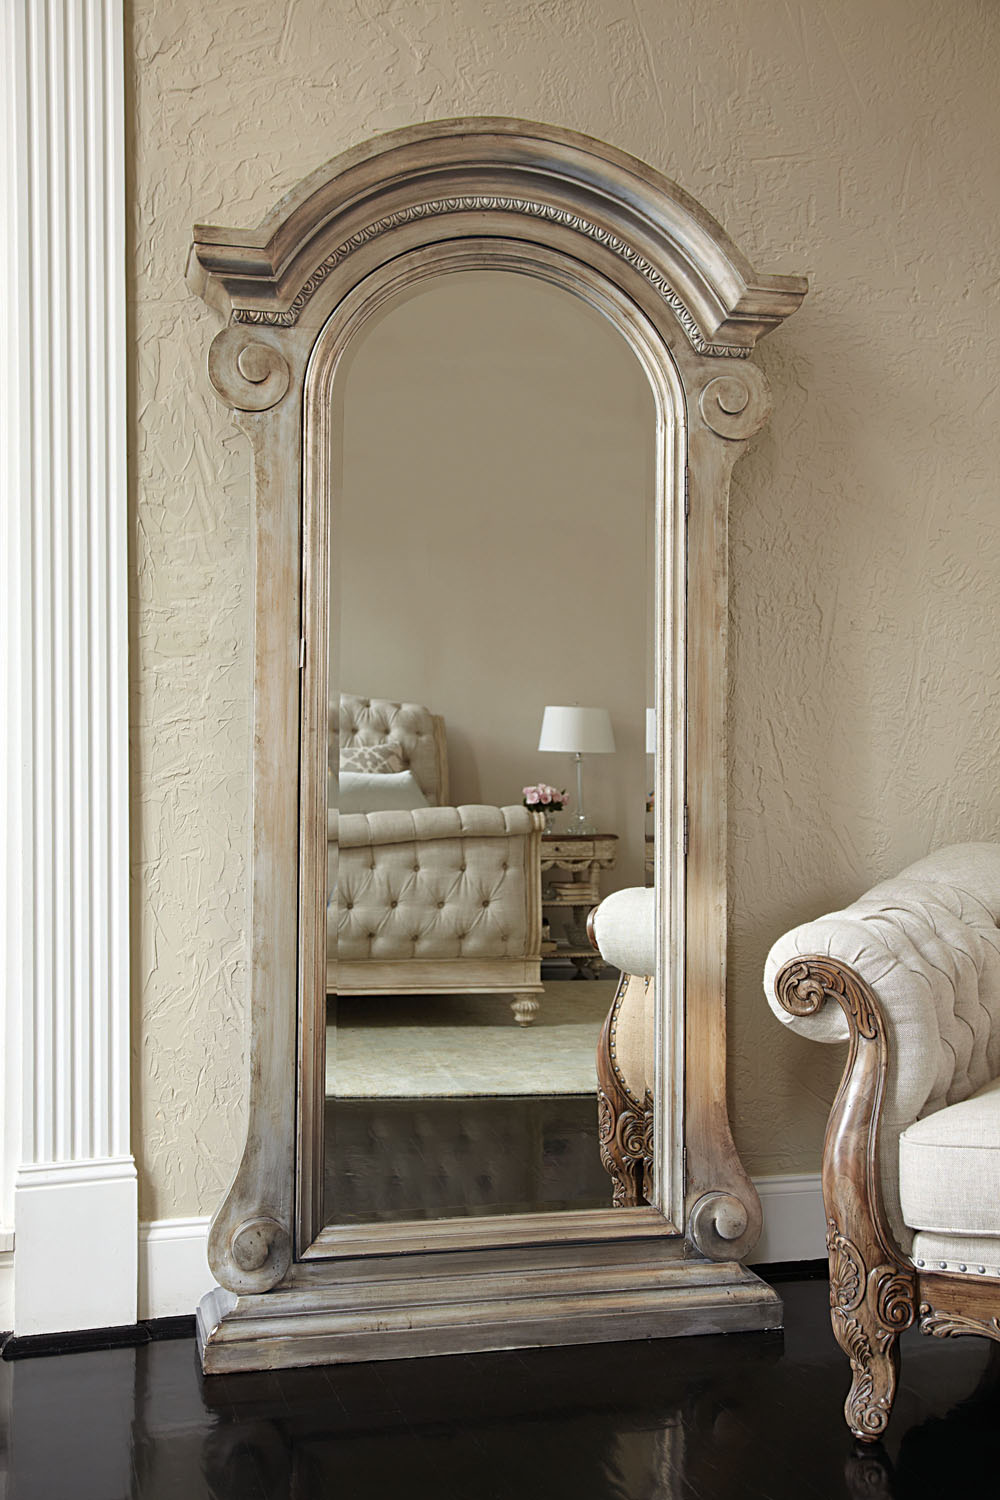 Mirrors In Bedroom Superstition Mirrors Wall Mirror Decorative Accents Decorating Floor Mirror